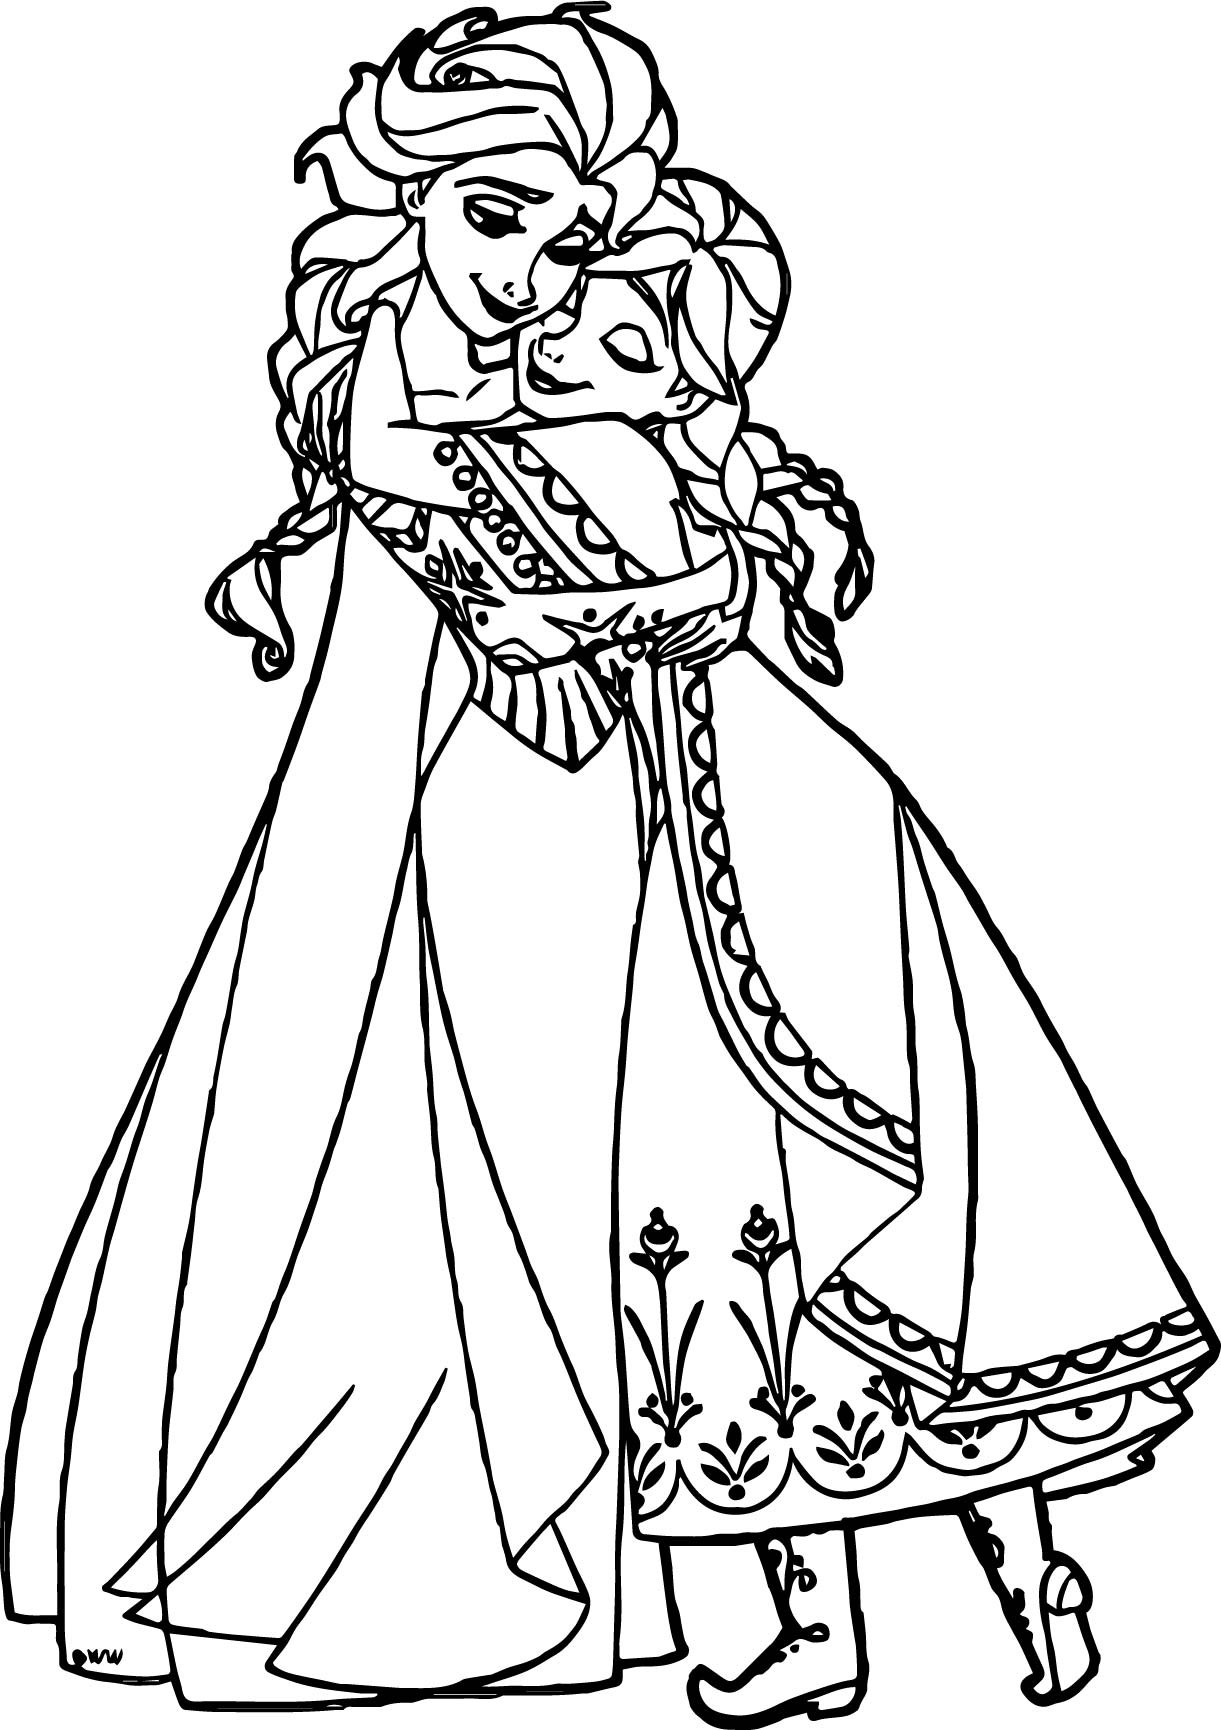 Ana And Elsa Coloring Pages  Anna Elsa Hugging Coloring Page